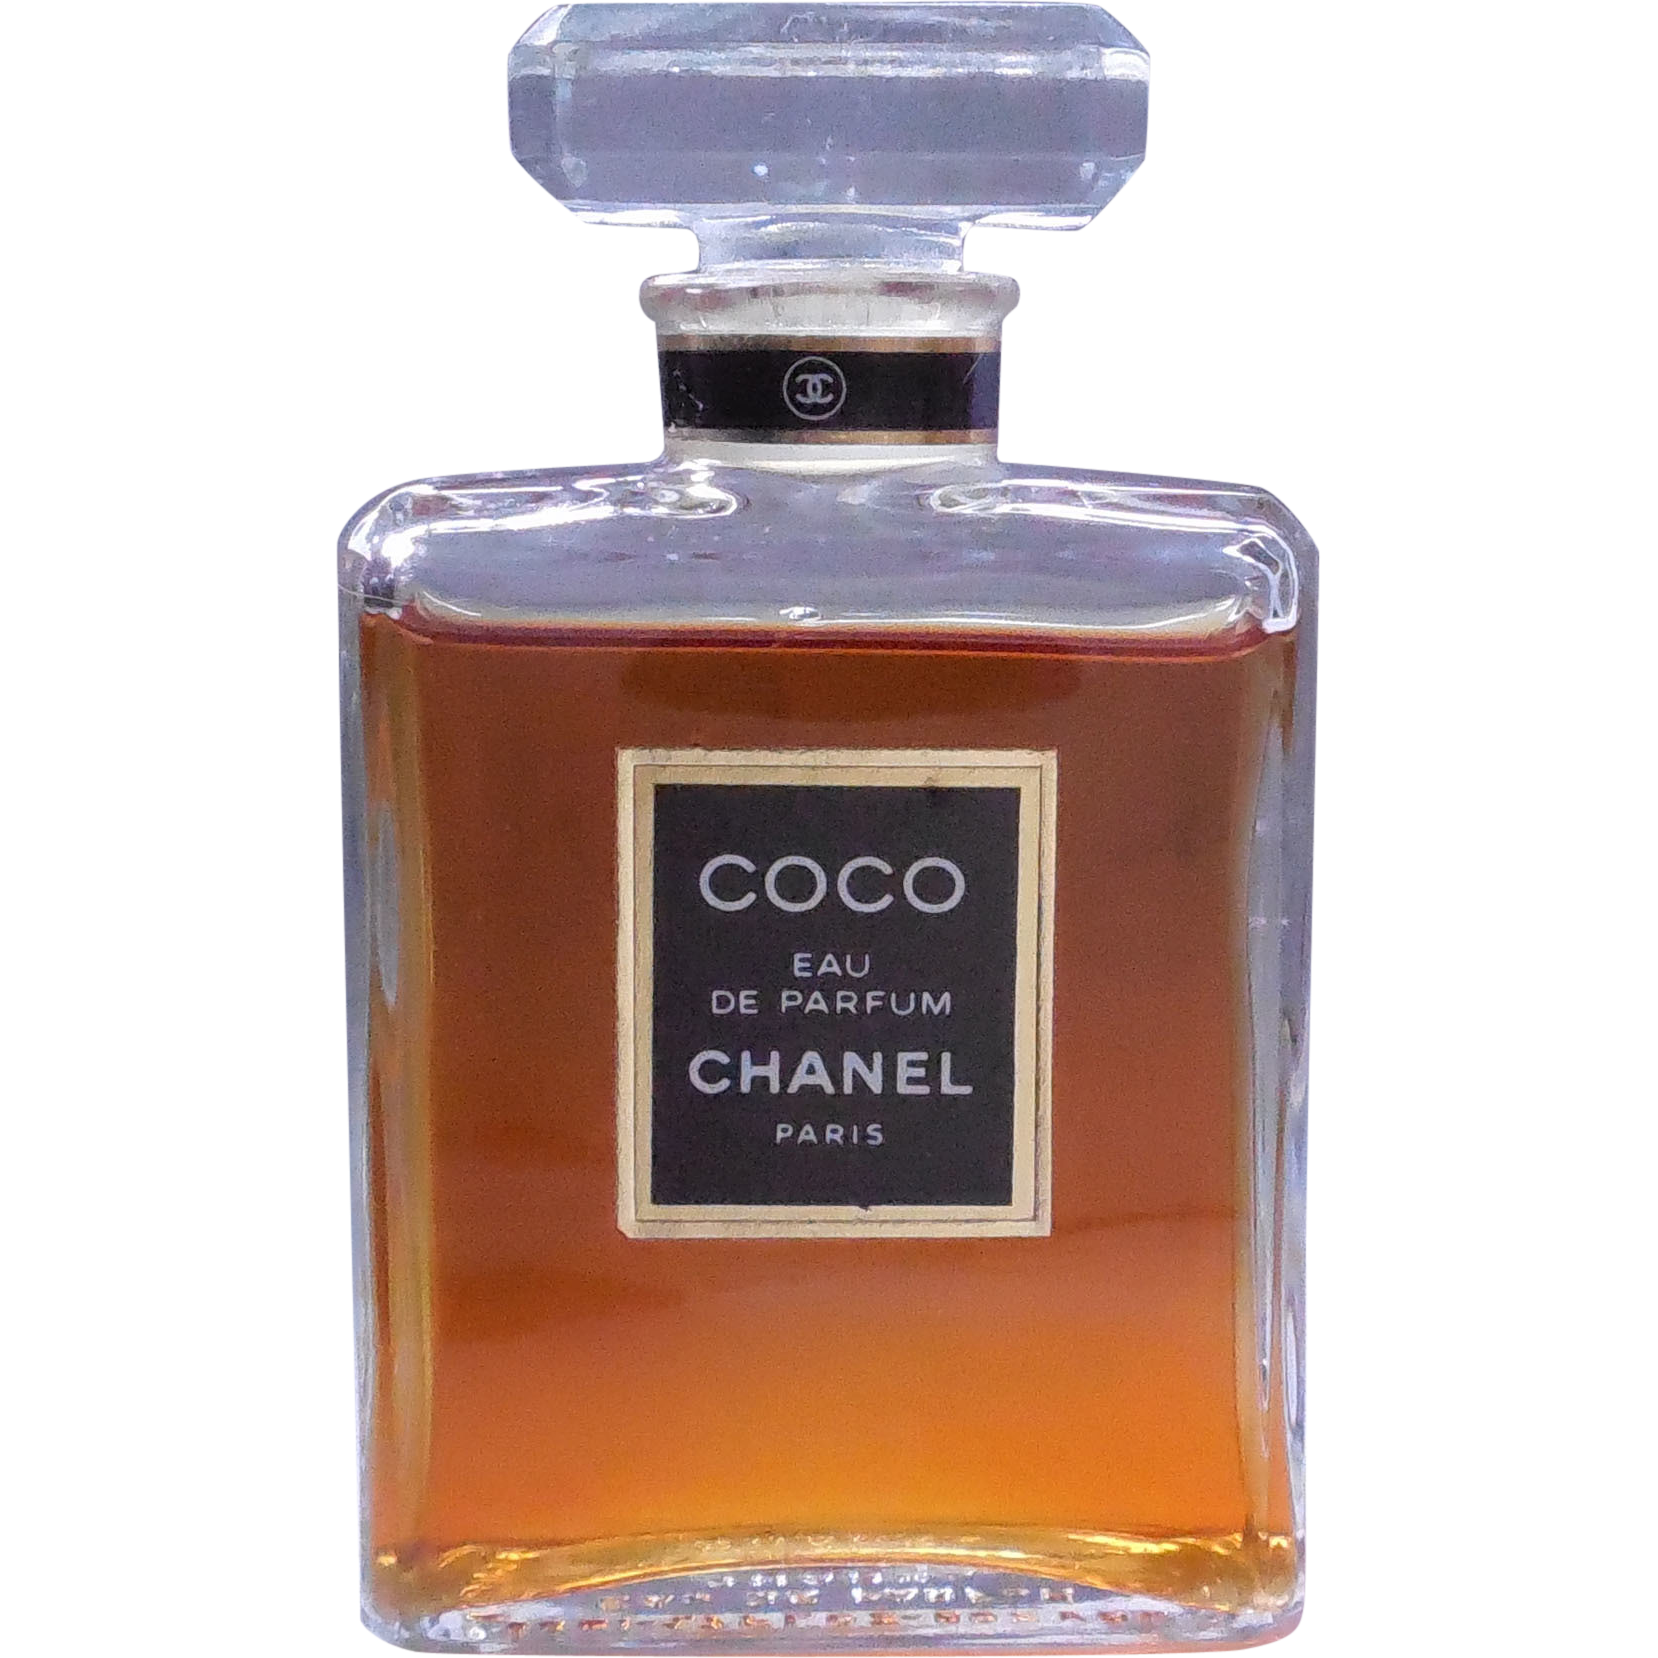 vintage coco chanel eau de parfum 1 7 fl ounce glass. Black Bedroom Furniture Sets. Home Design Ideas